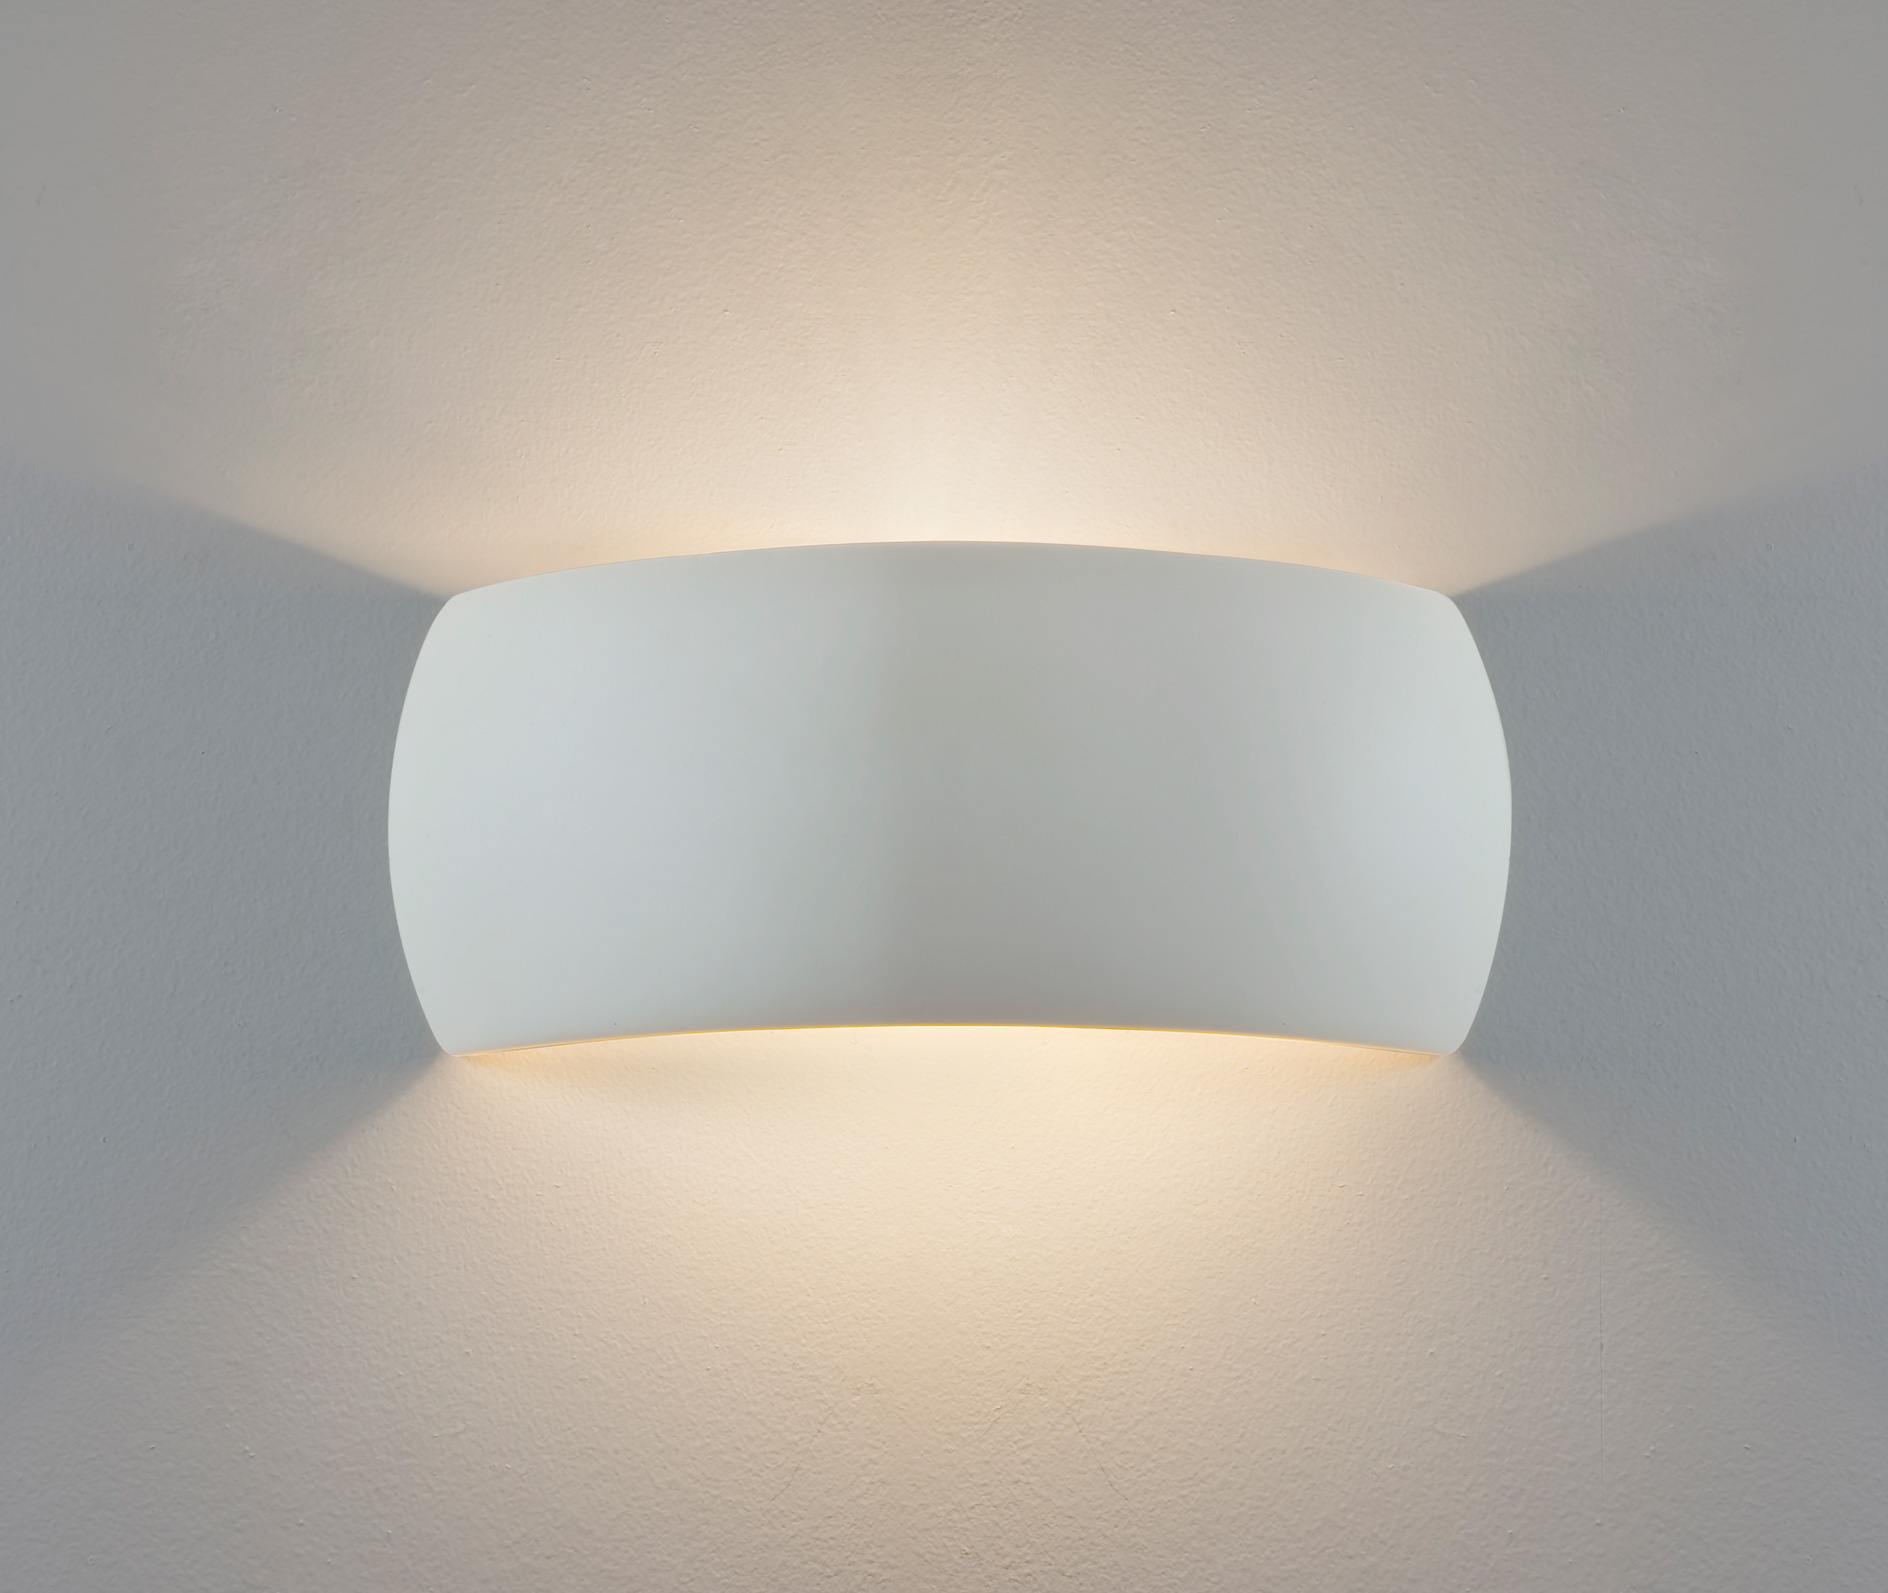 Astro Milo ceramic plaster wall light up down white 60W E27 can be painted Thumbnail 1